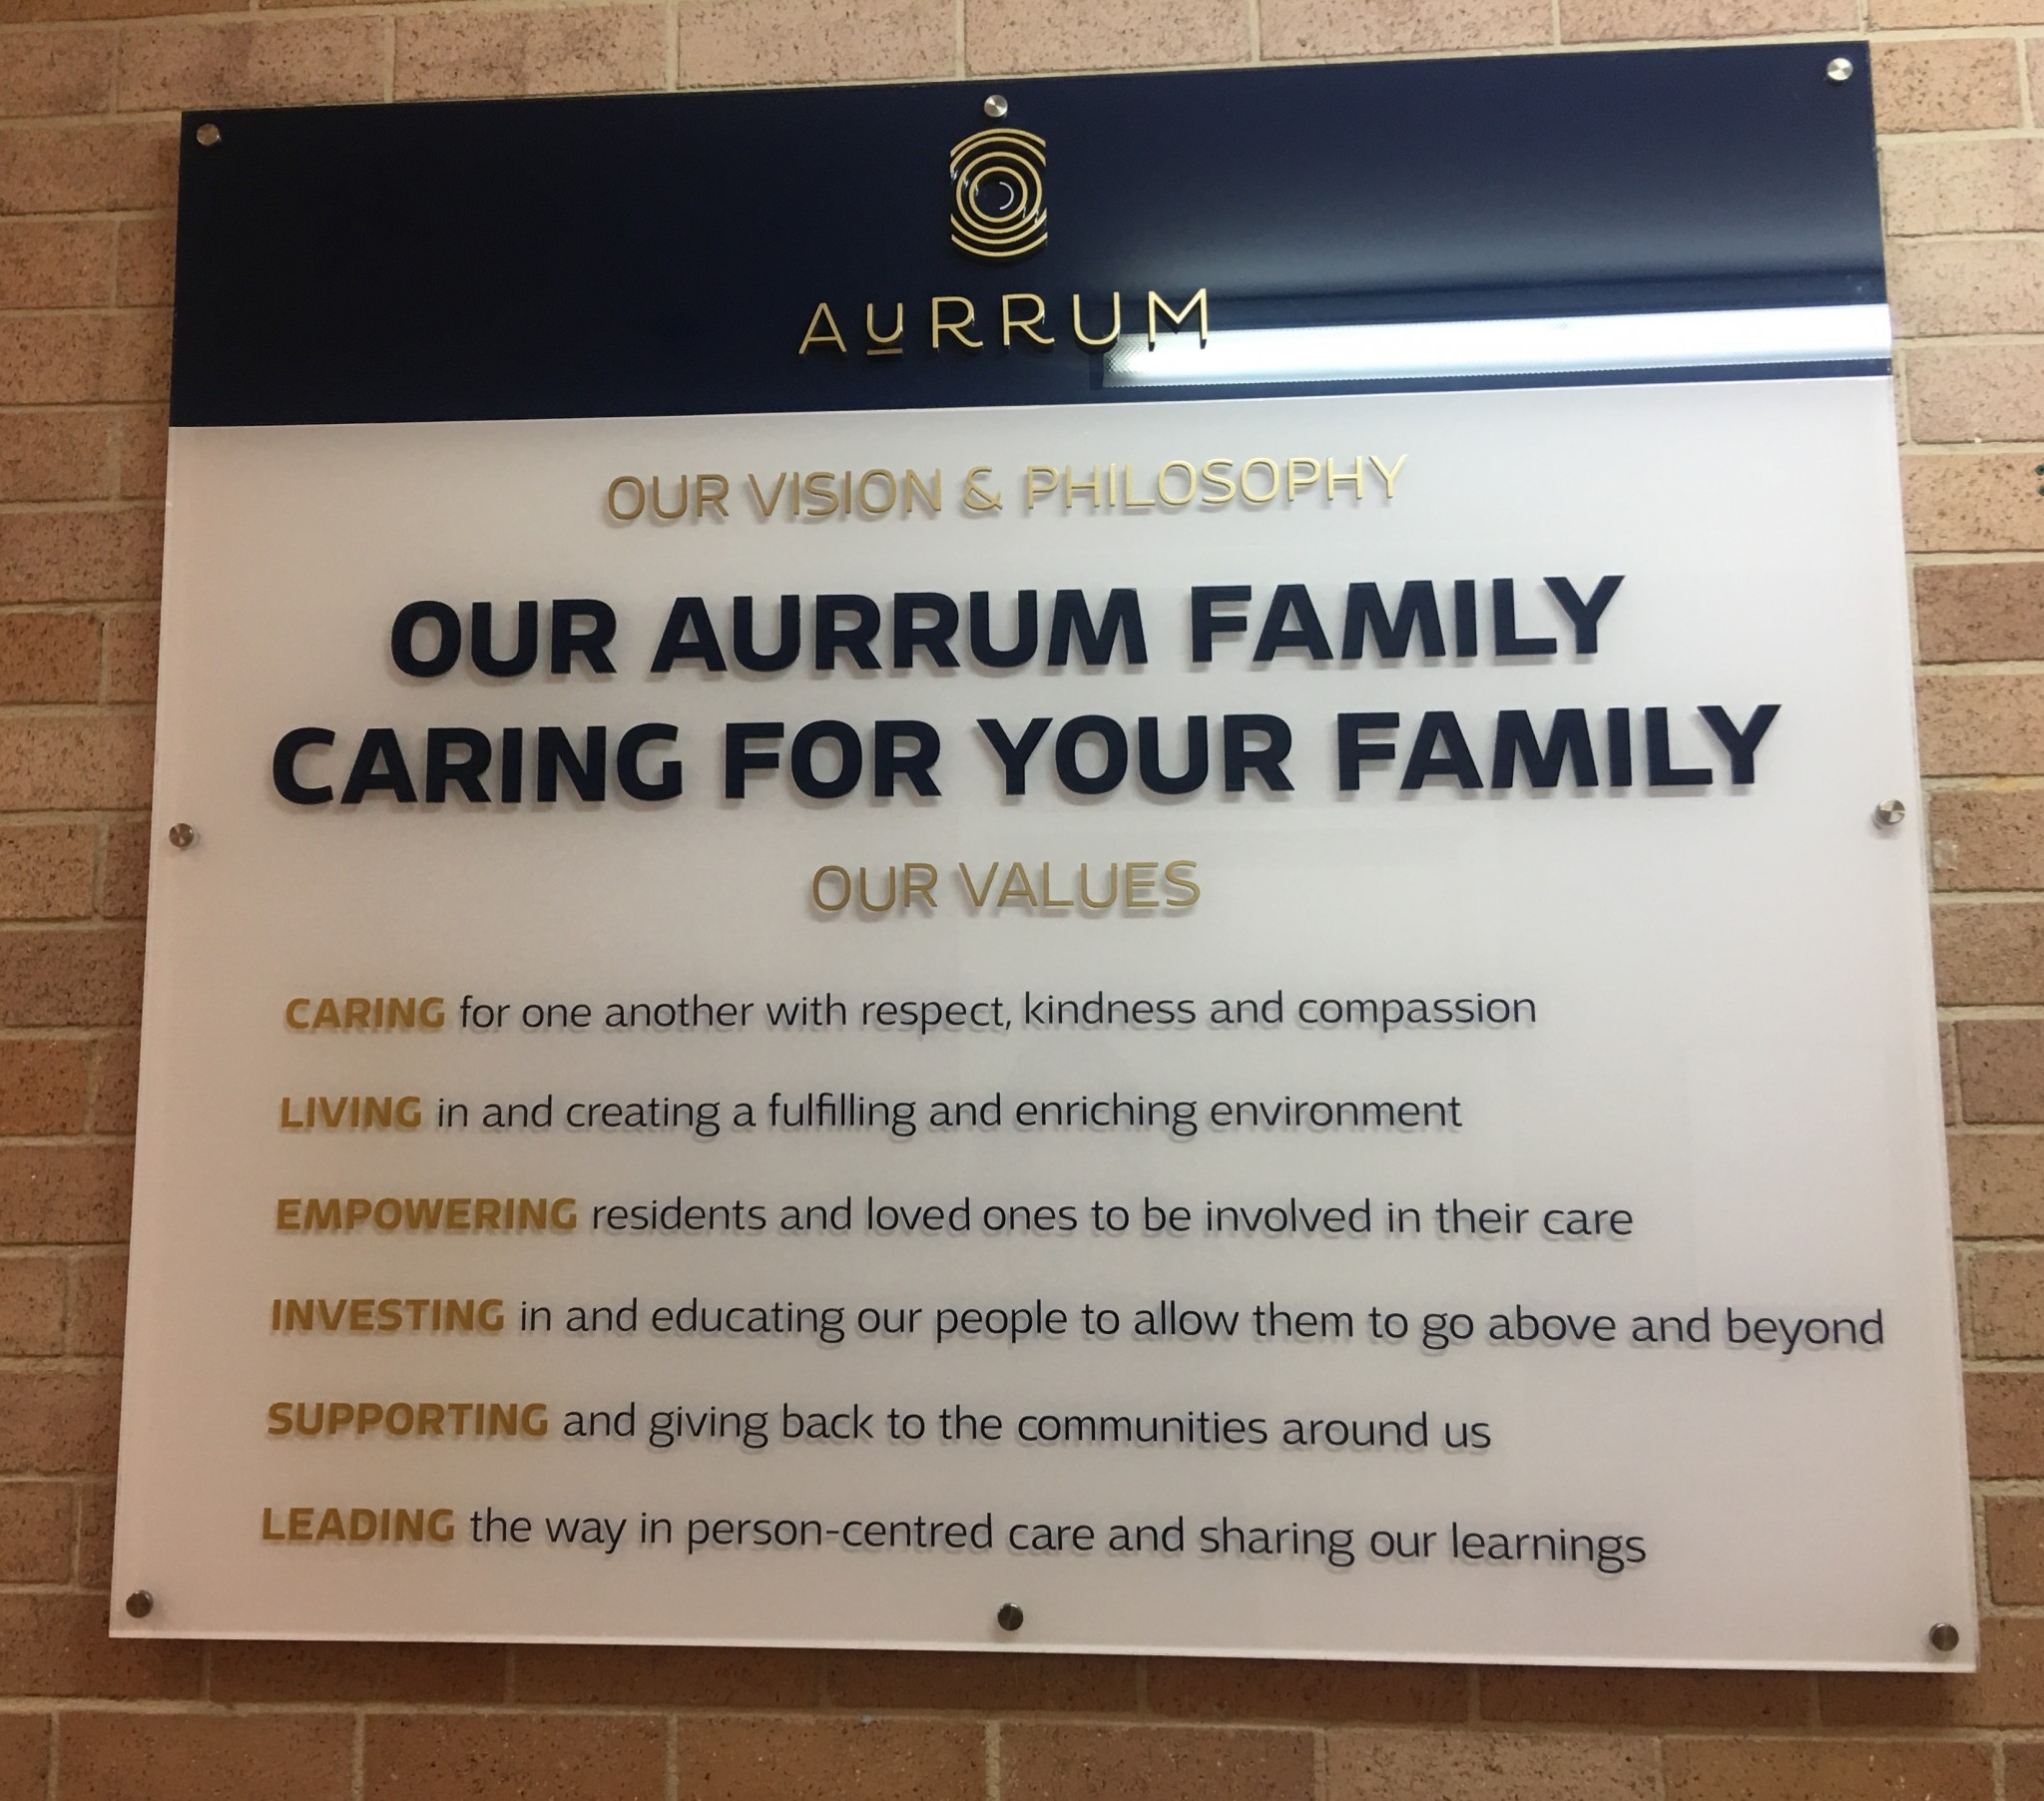 Aurrum values